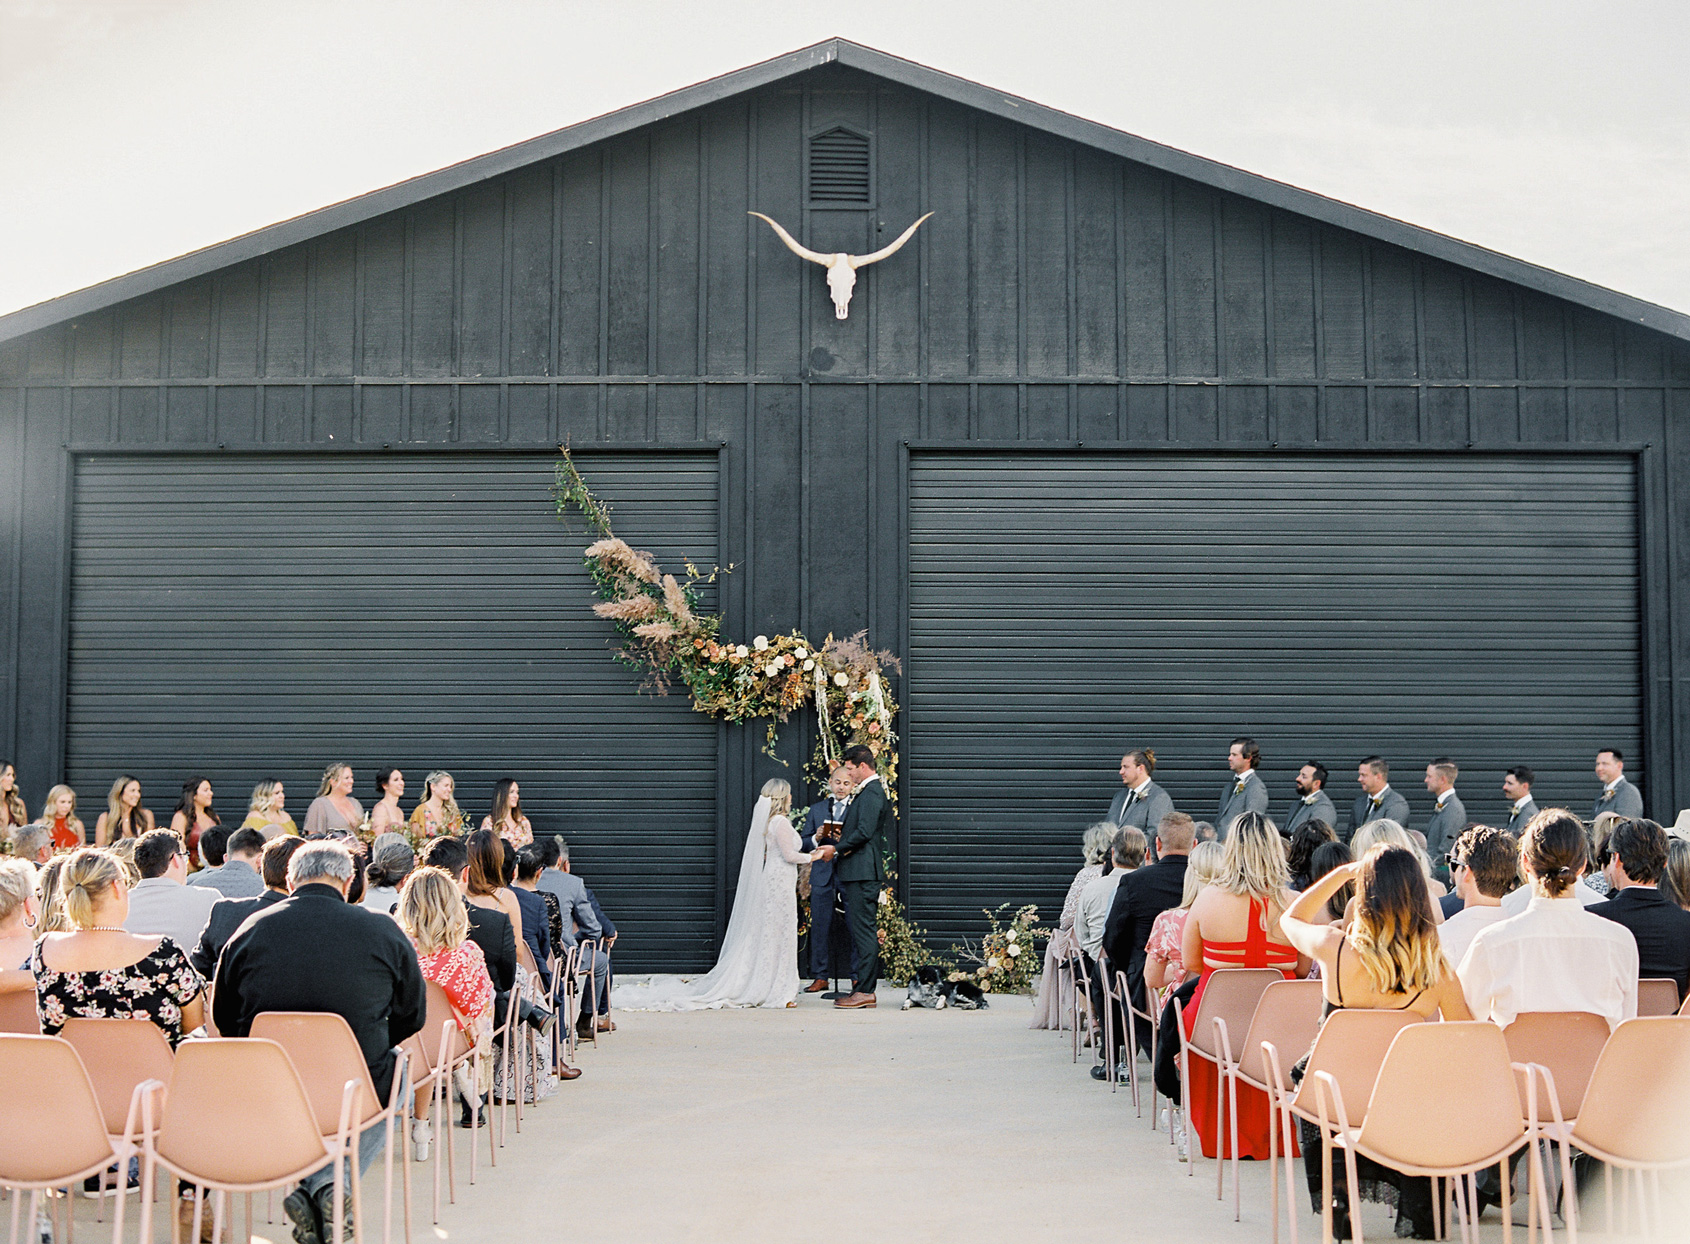 wedding ceremony in front of black barn